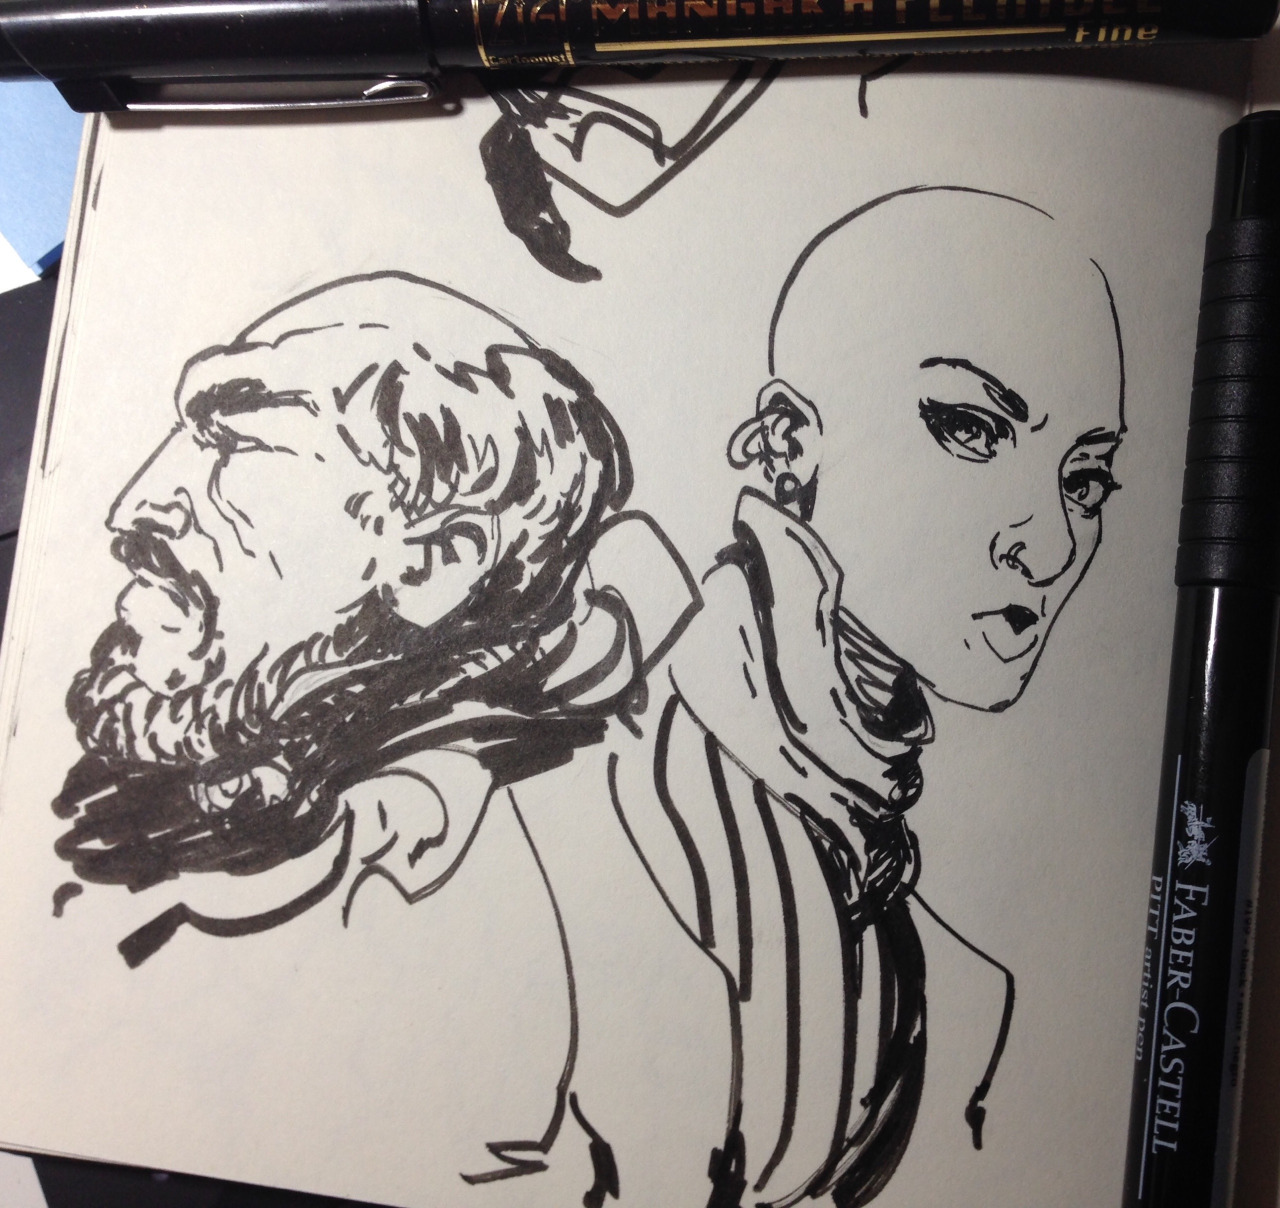 Doodling in the sketchbook with new toys.